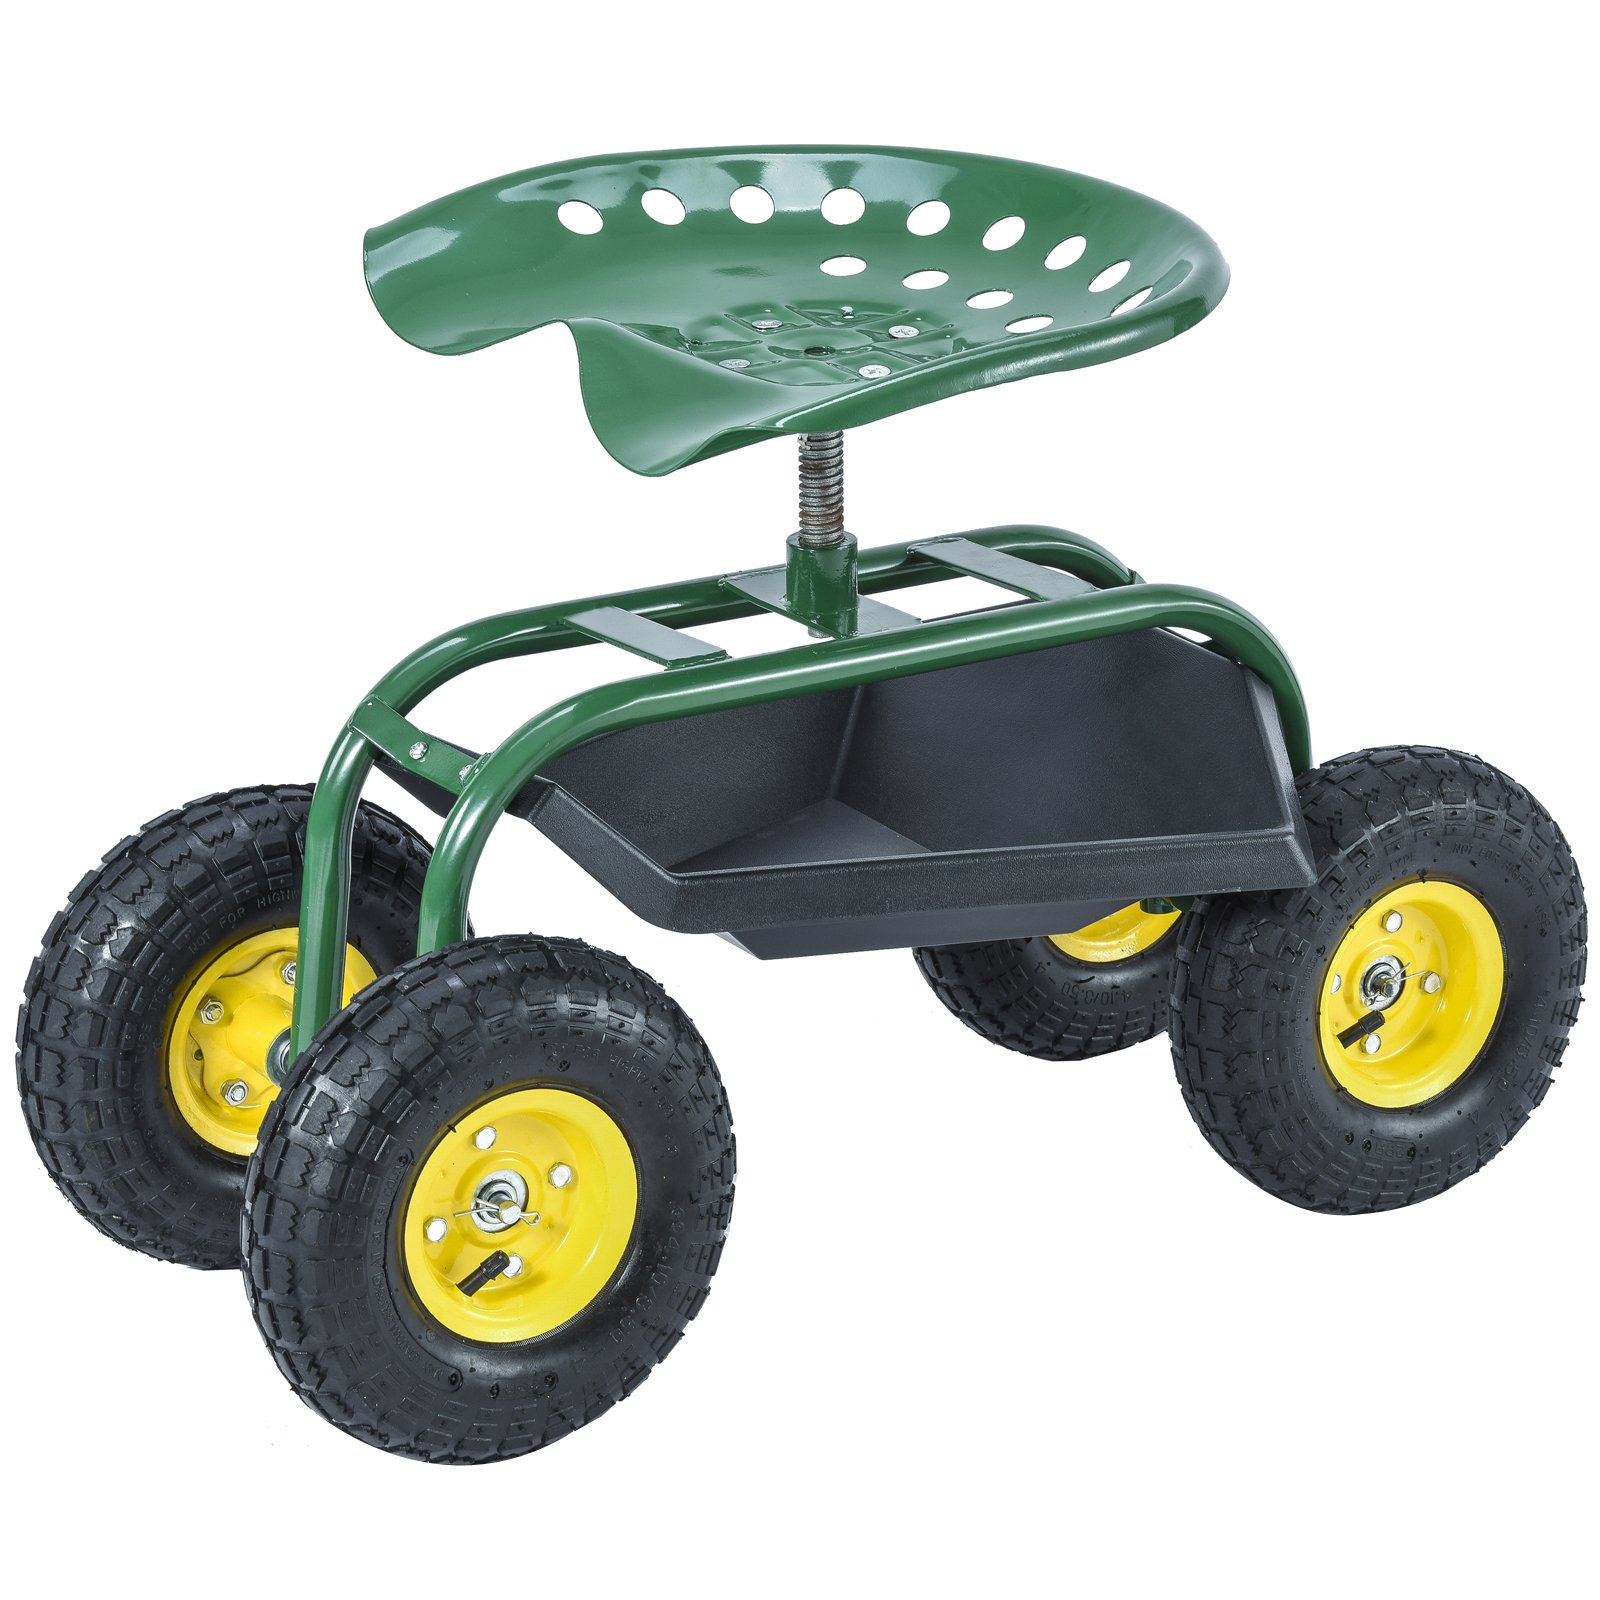 Mecor Garden Cart Work Seat with Tool Tray Gardening Wagon Rolling Heavy Duty Cart